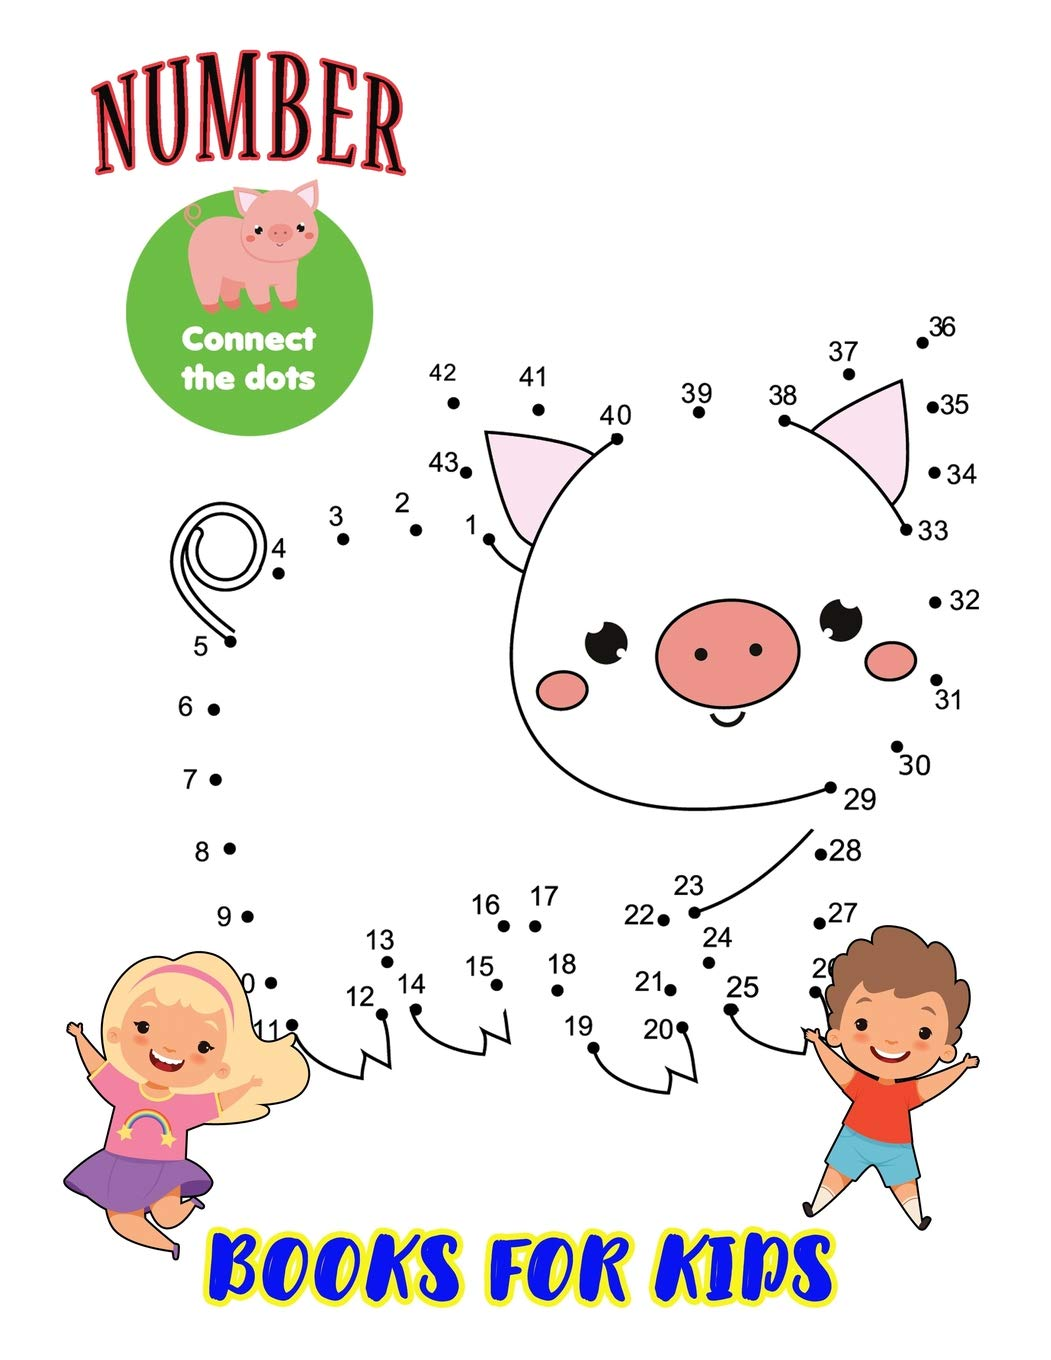 - Amazon.com: Connect The Dots Numbers Books For Kids: Connect The